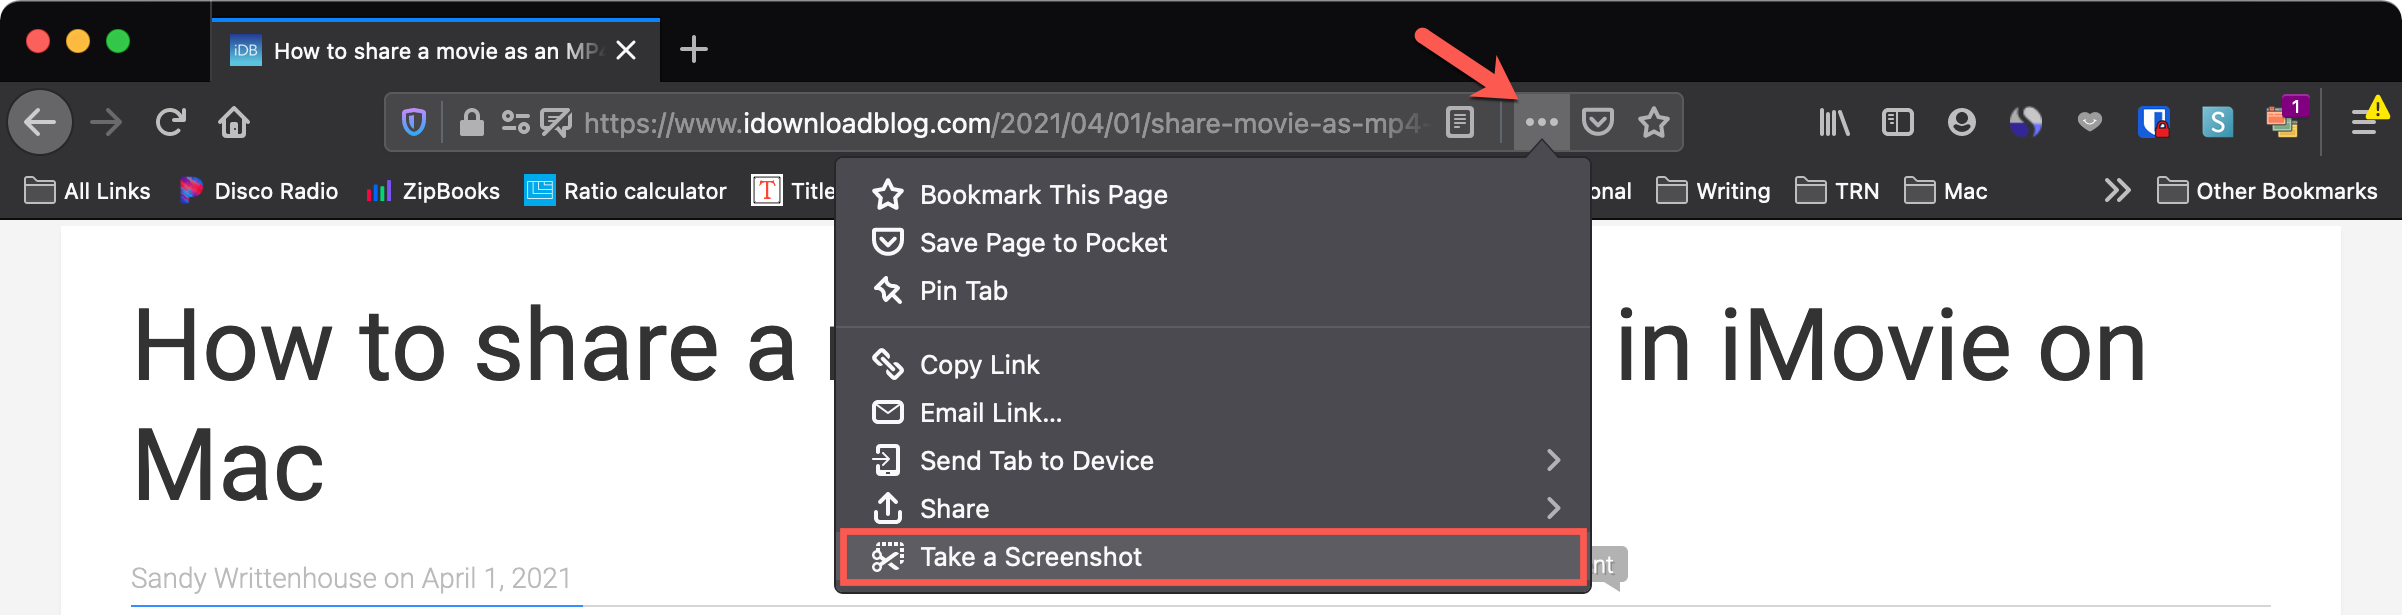 Firefox Page Actions Take a Screenshot on Mac